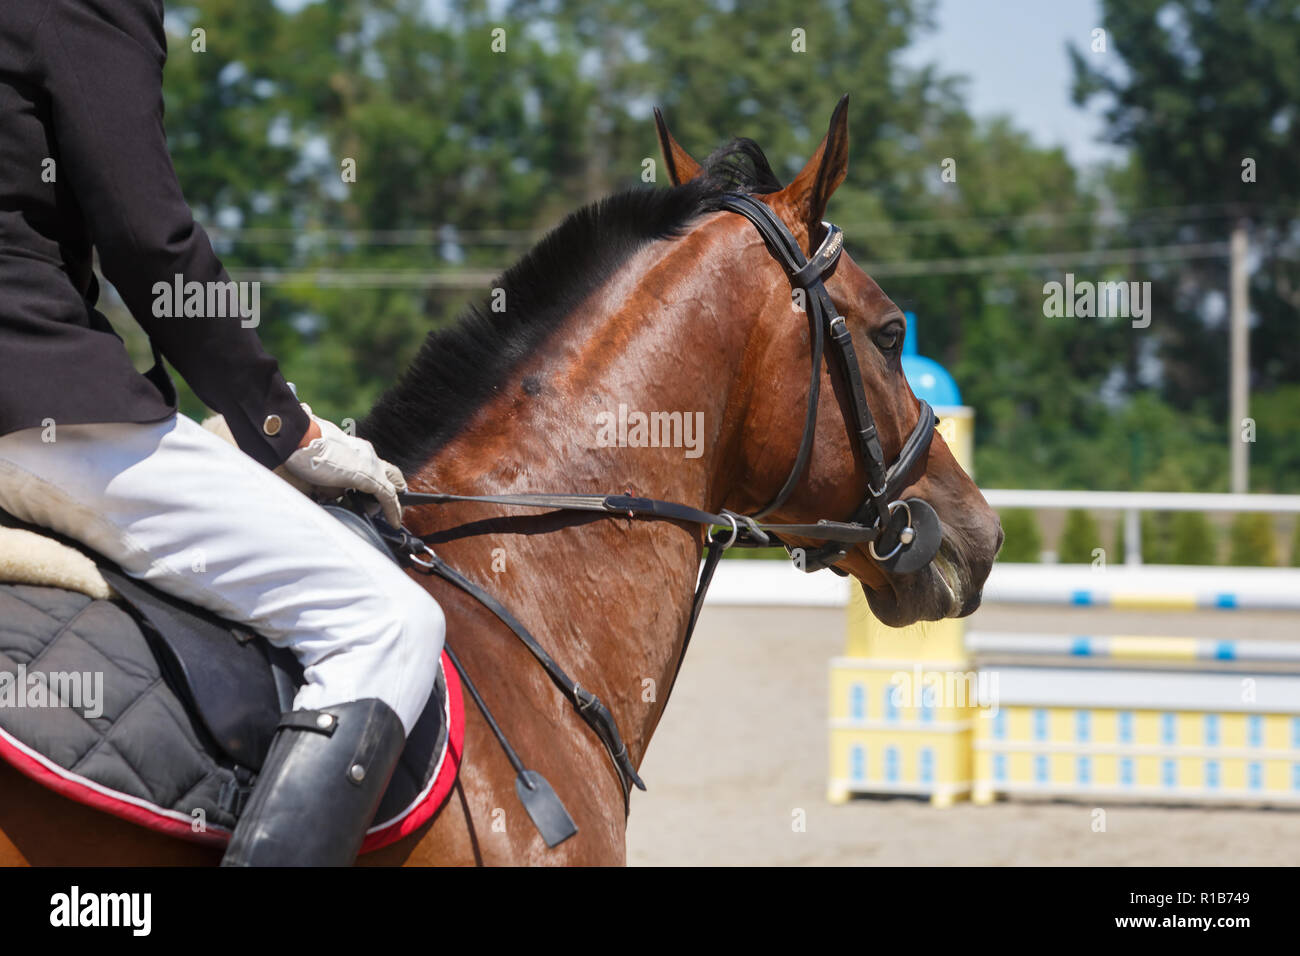 Horseman rides on the sorrel horse close up against the background of obstacles - Stock Image